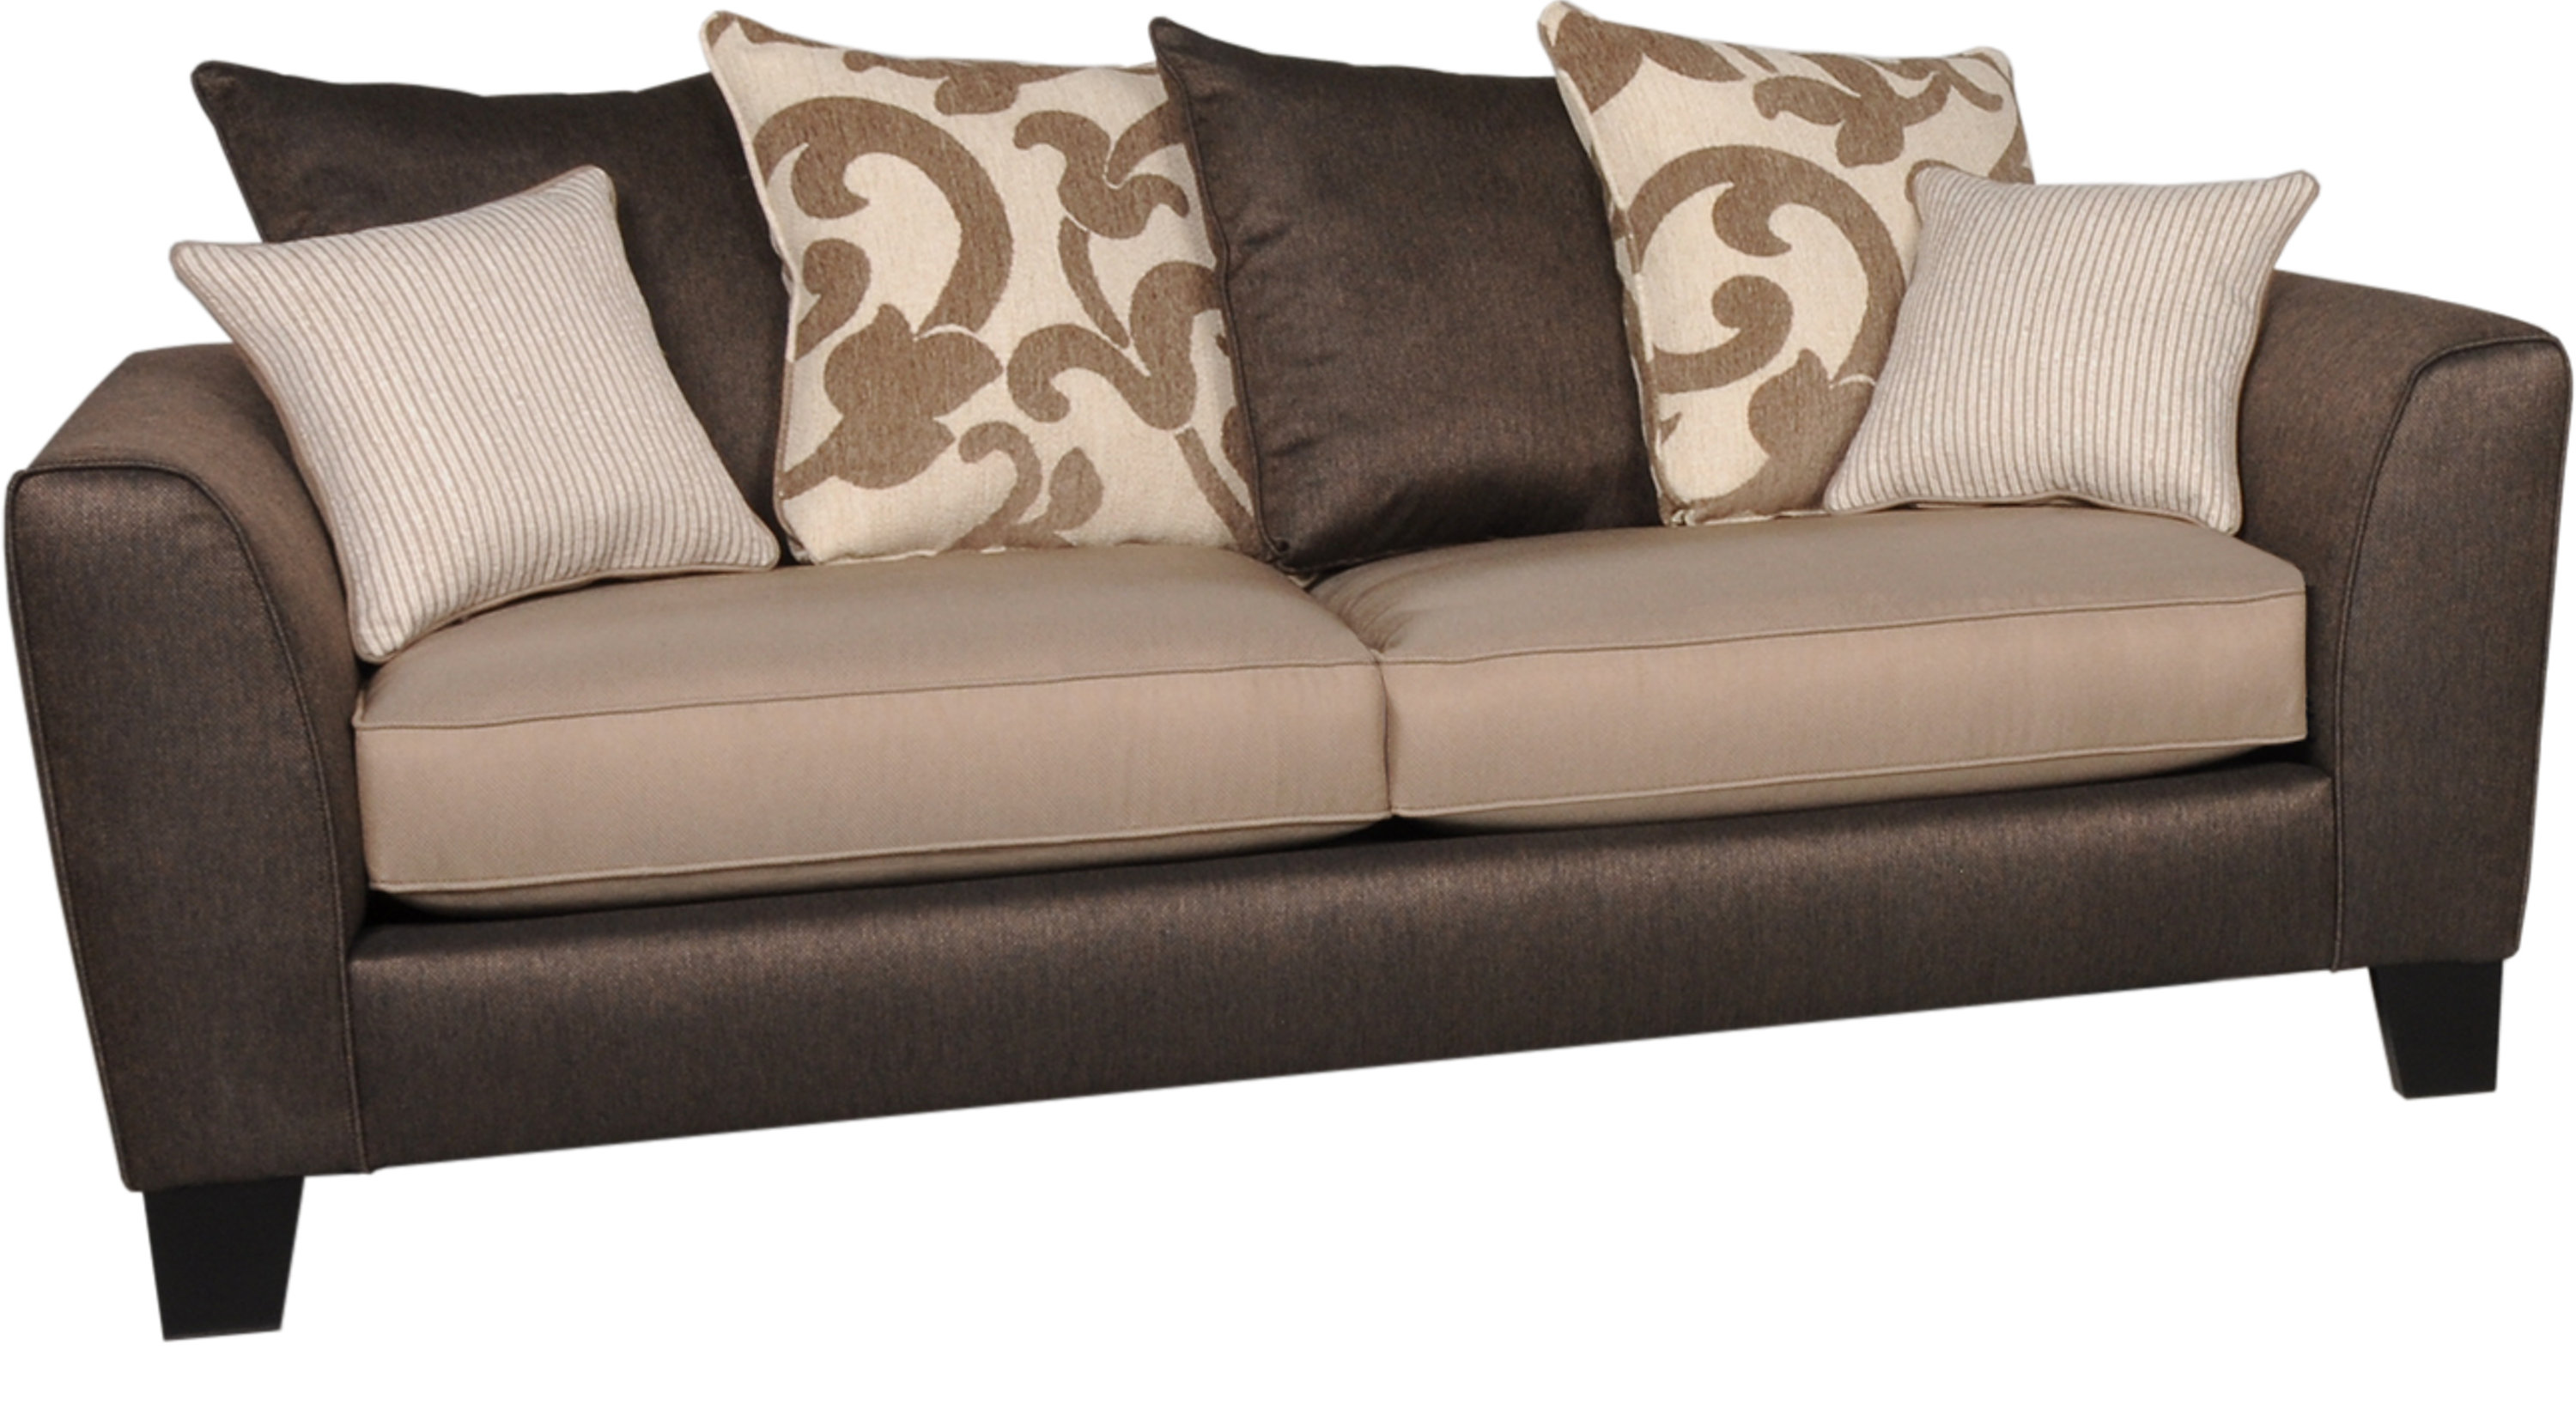 Copley Square Brown Sofa